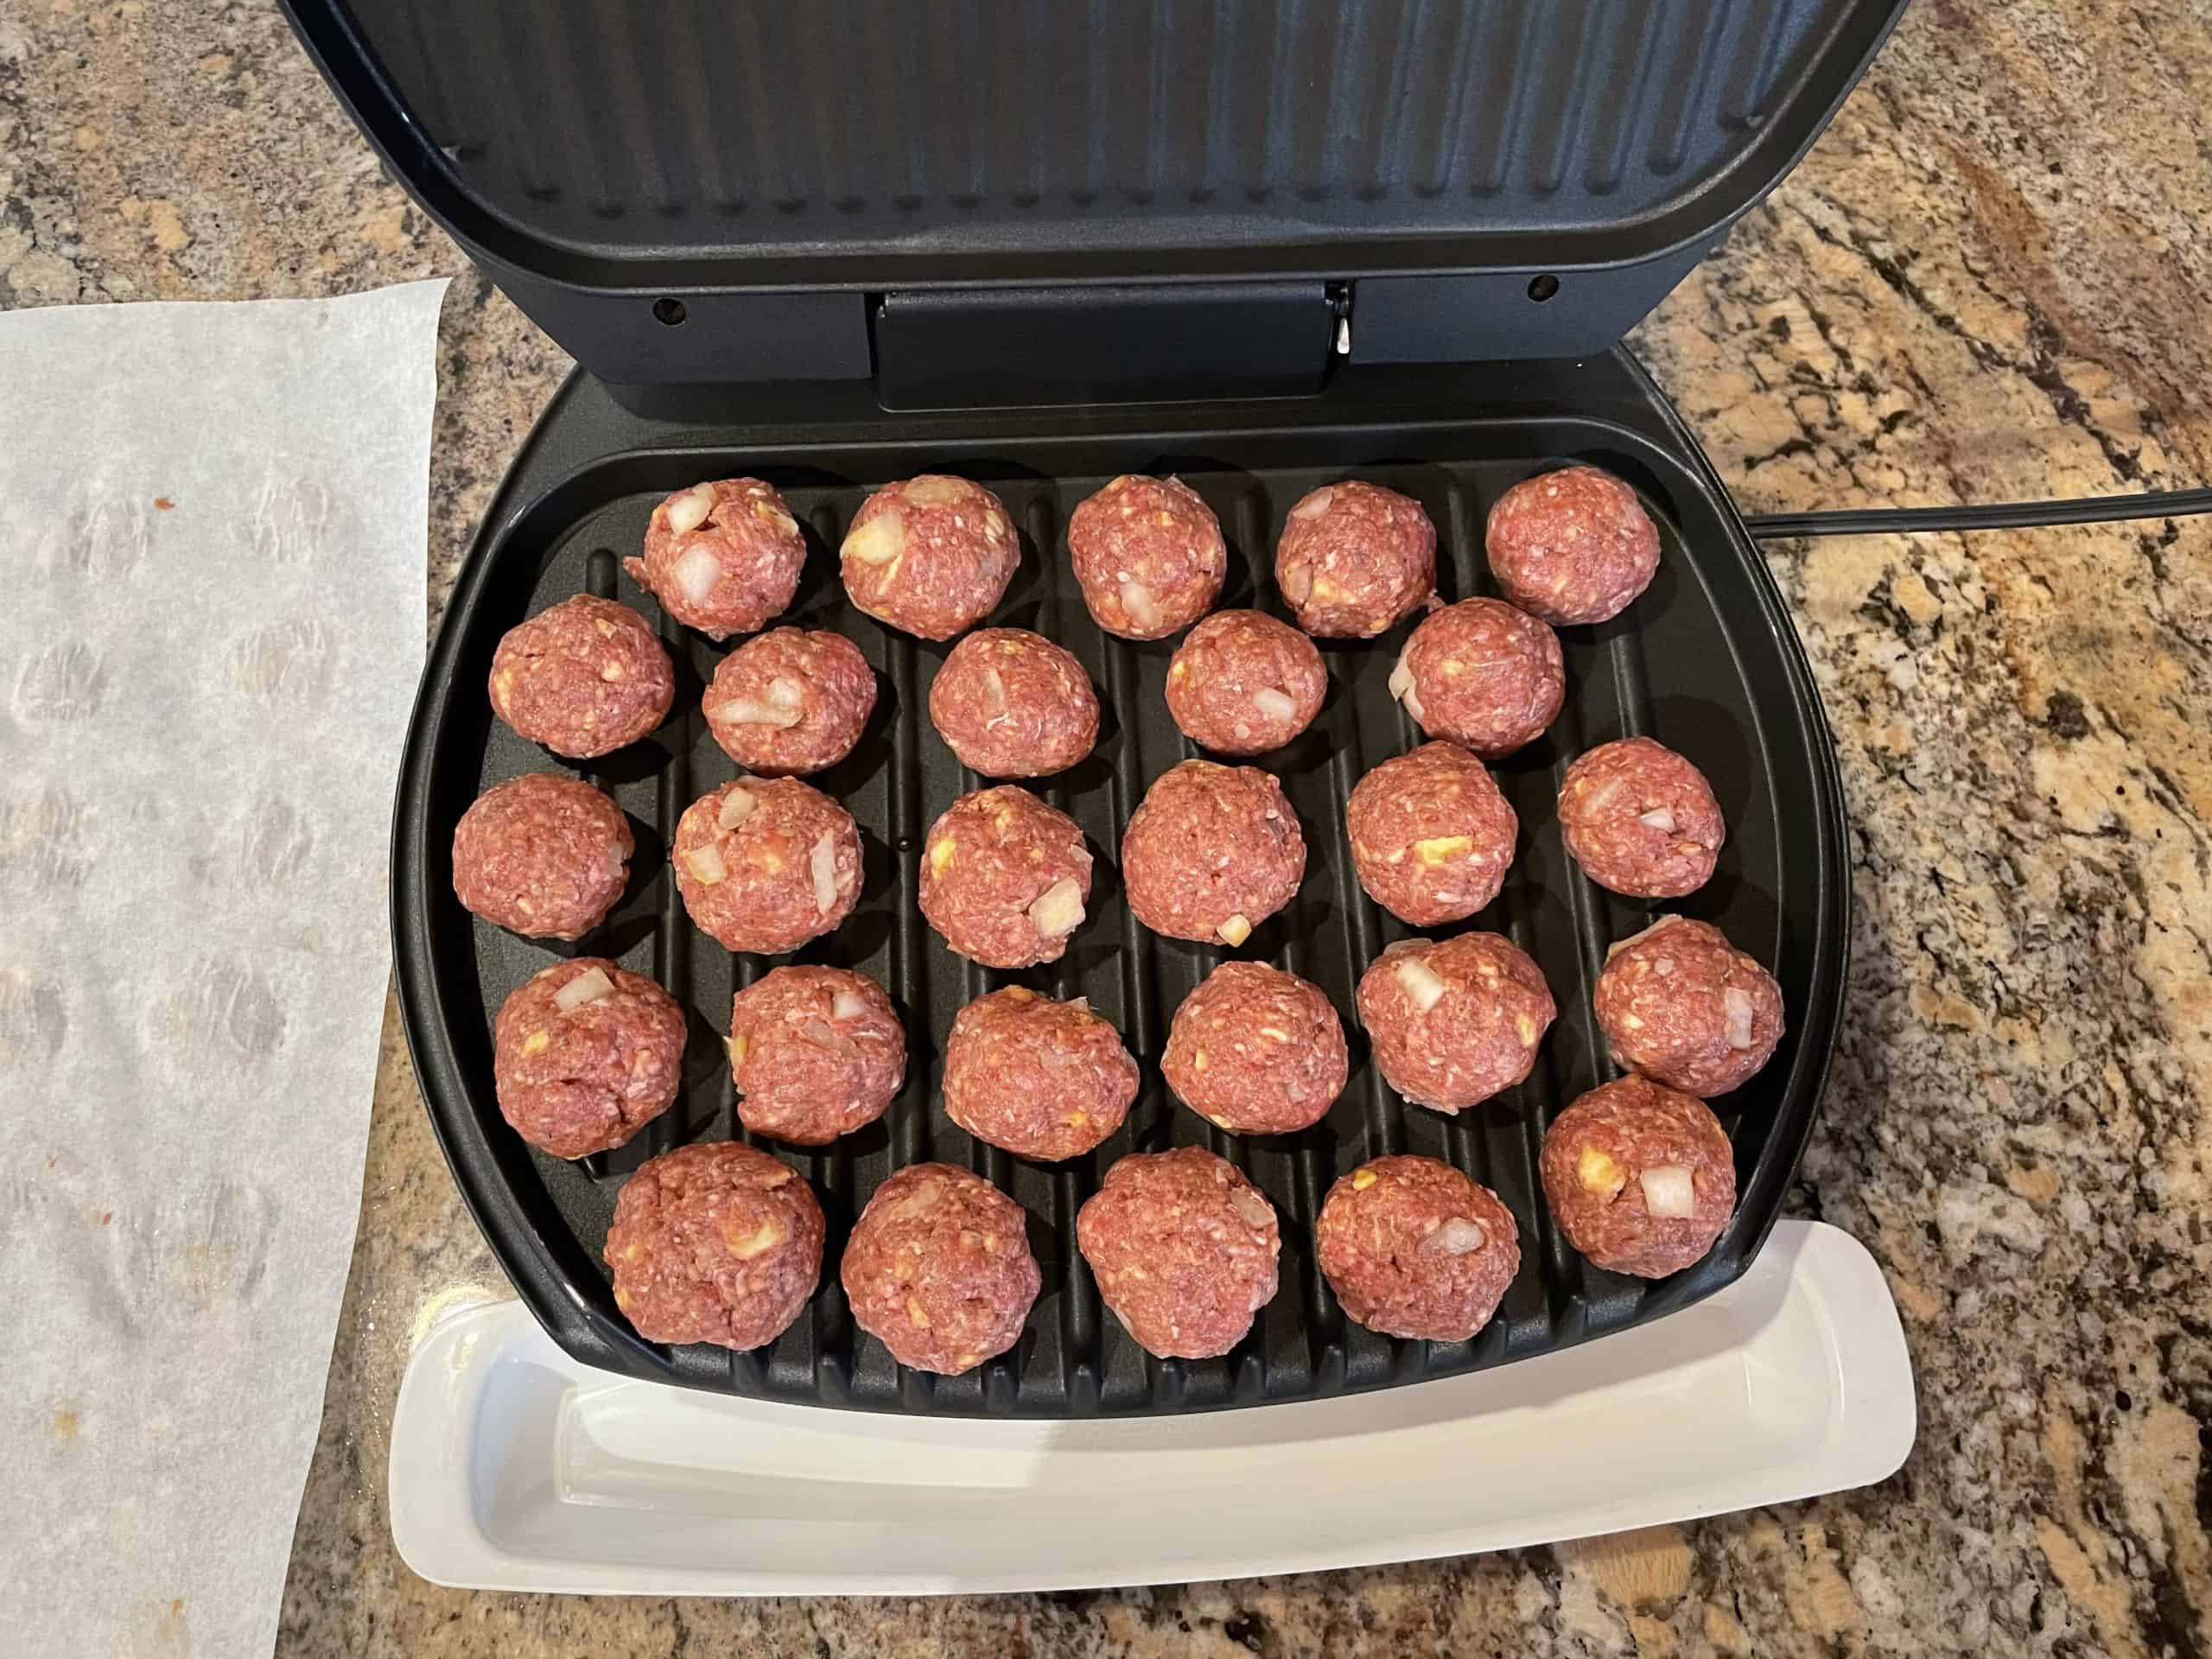 Browning meatballs on George Forman griddle.